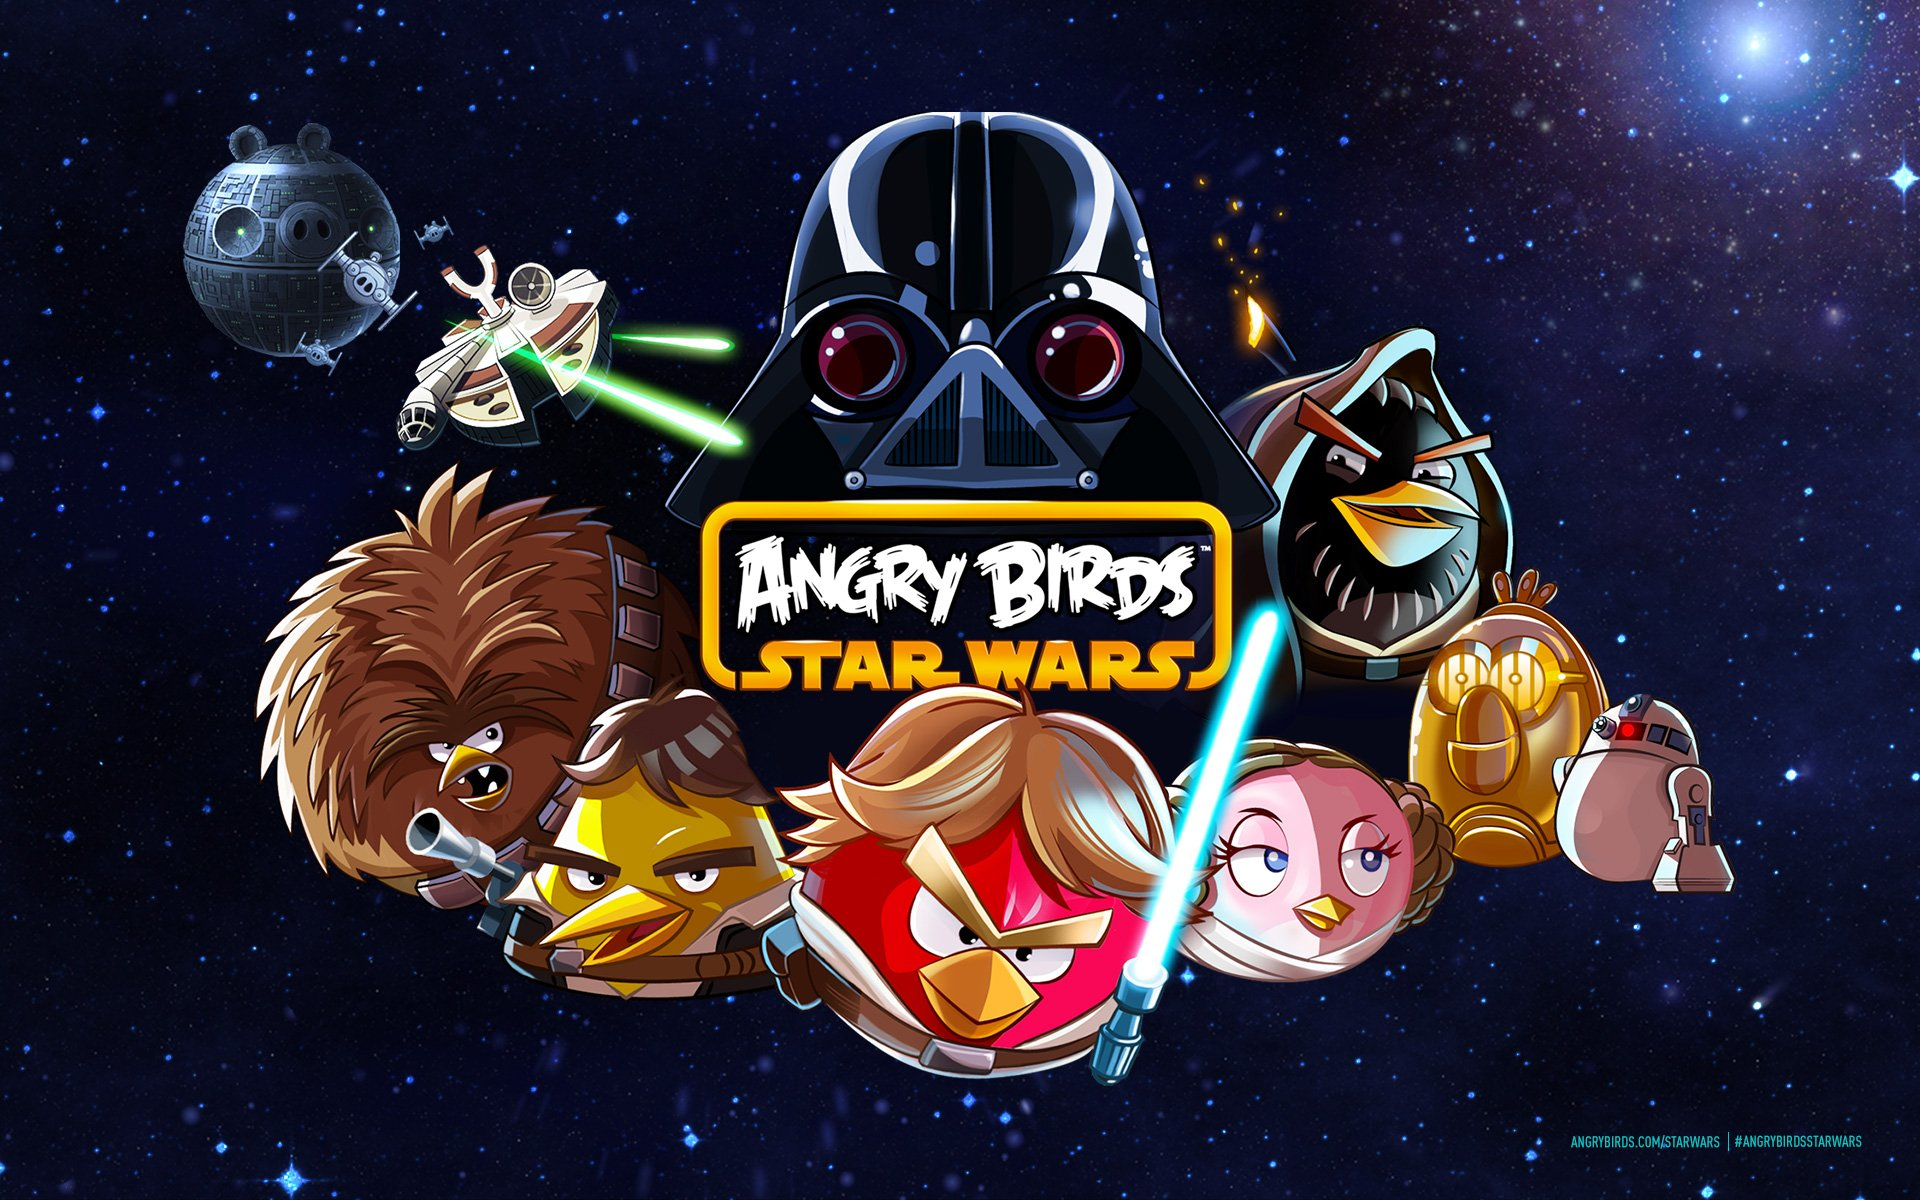 Angry Birds Star Wars Wallpaper   Angry Birds Wallpaper 32422194 1920x1200